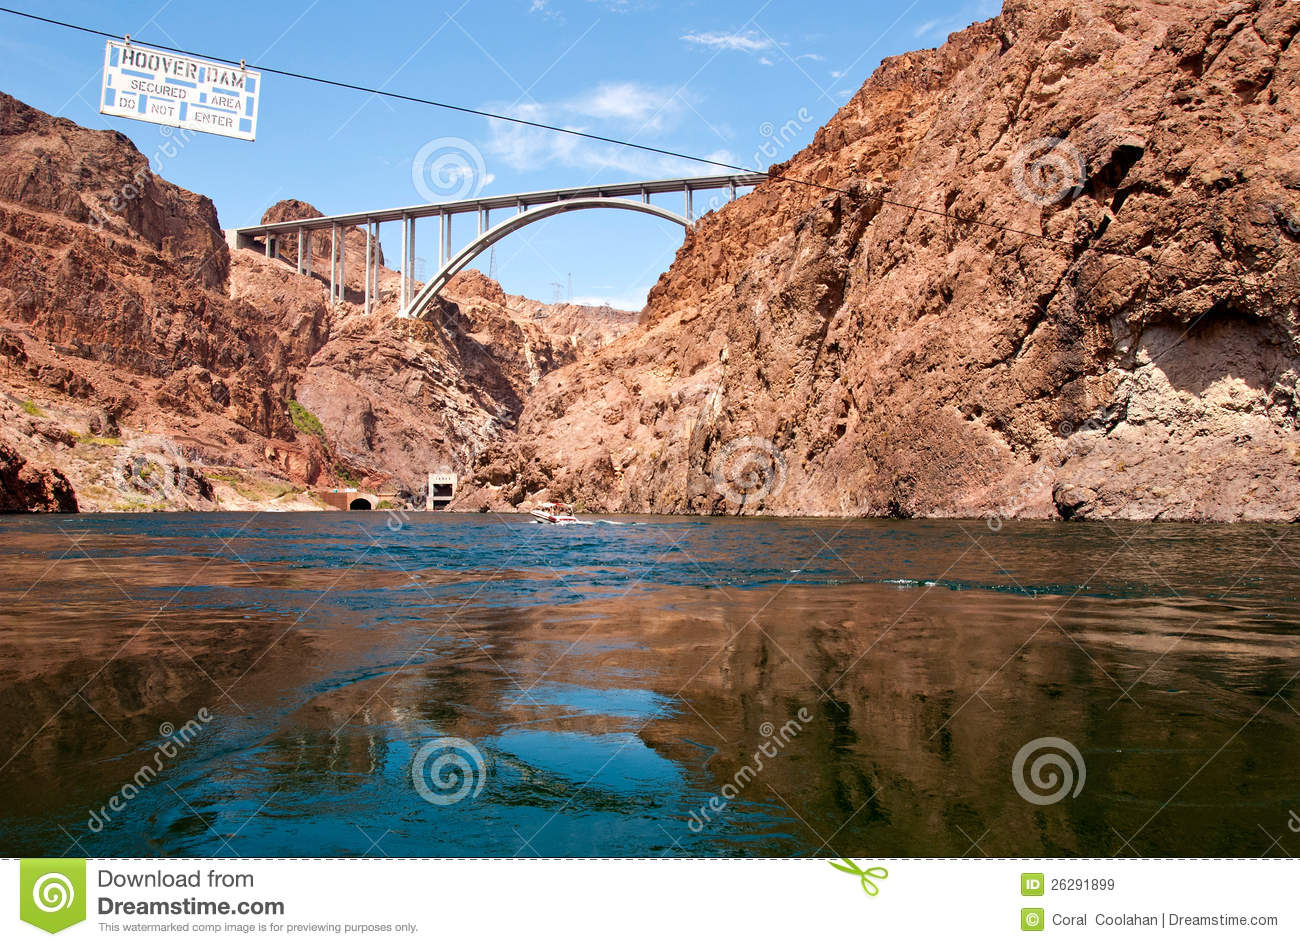 Hoover Dam bypass bridge stock image  Image of extension